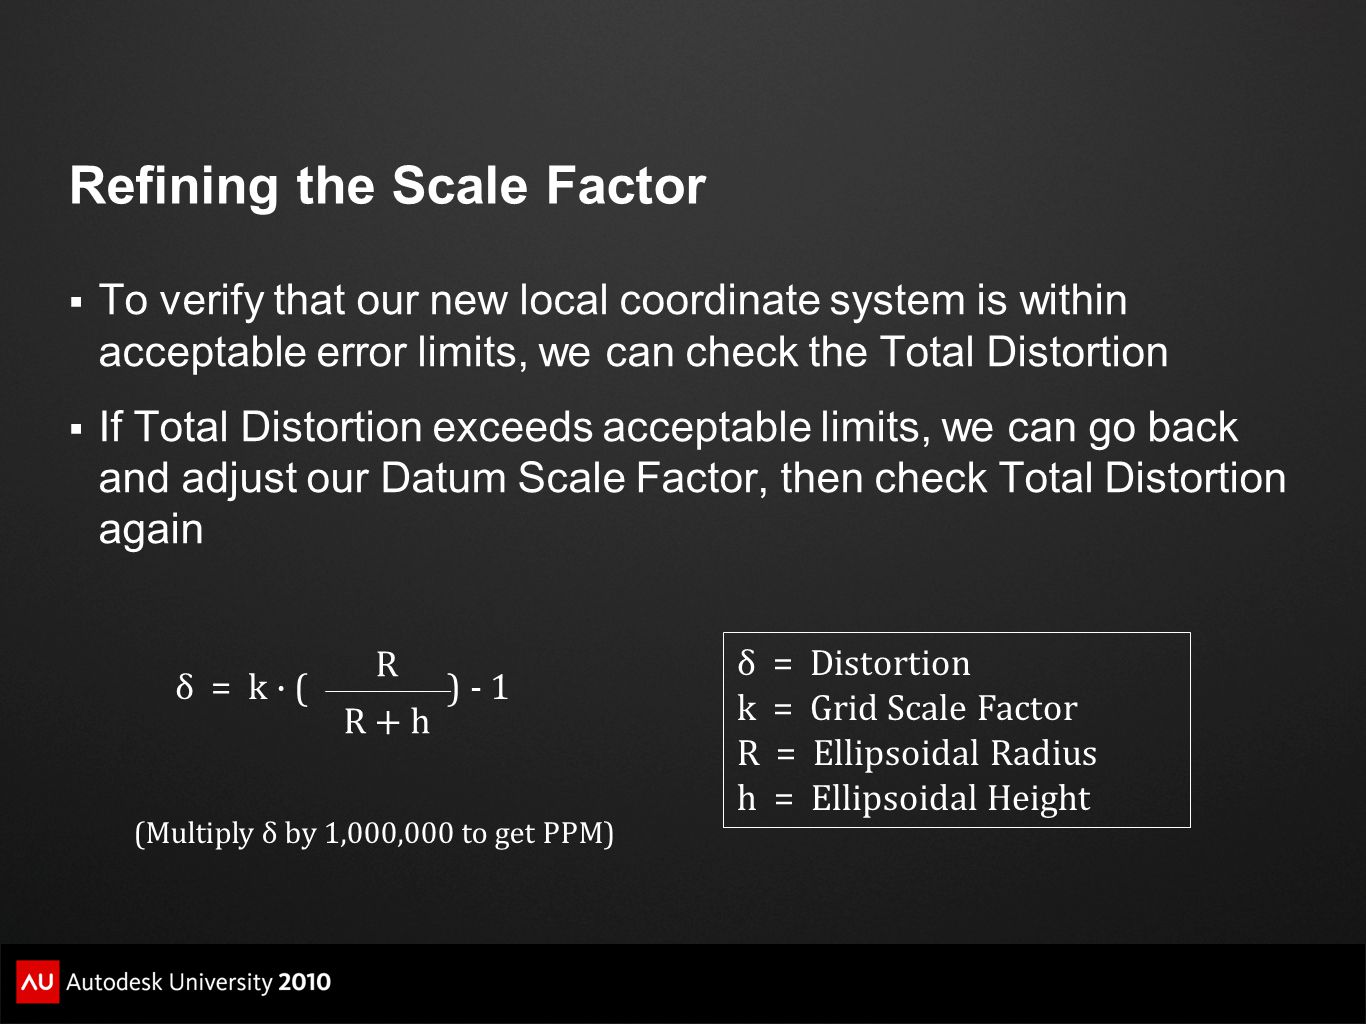 Refining the Scale Factor